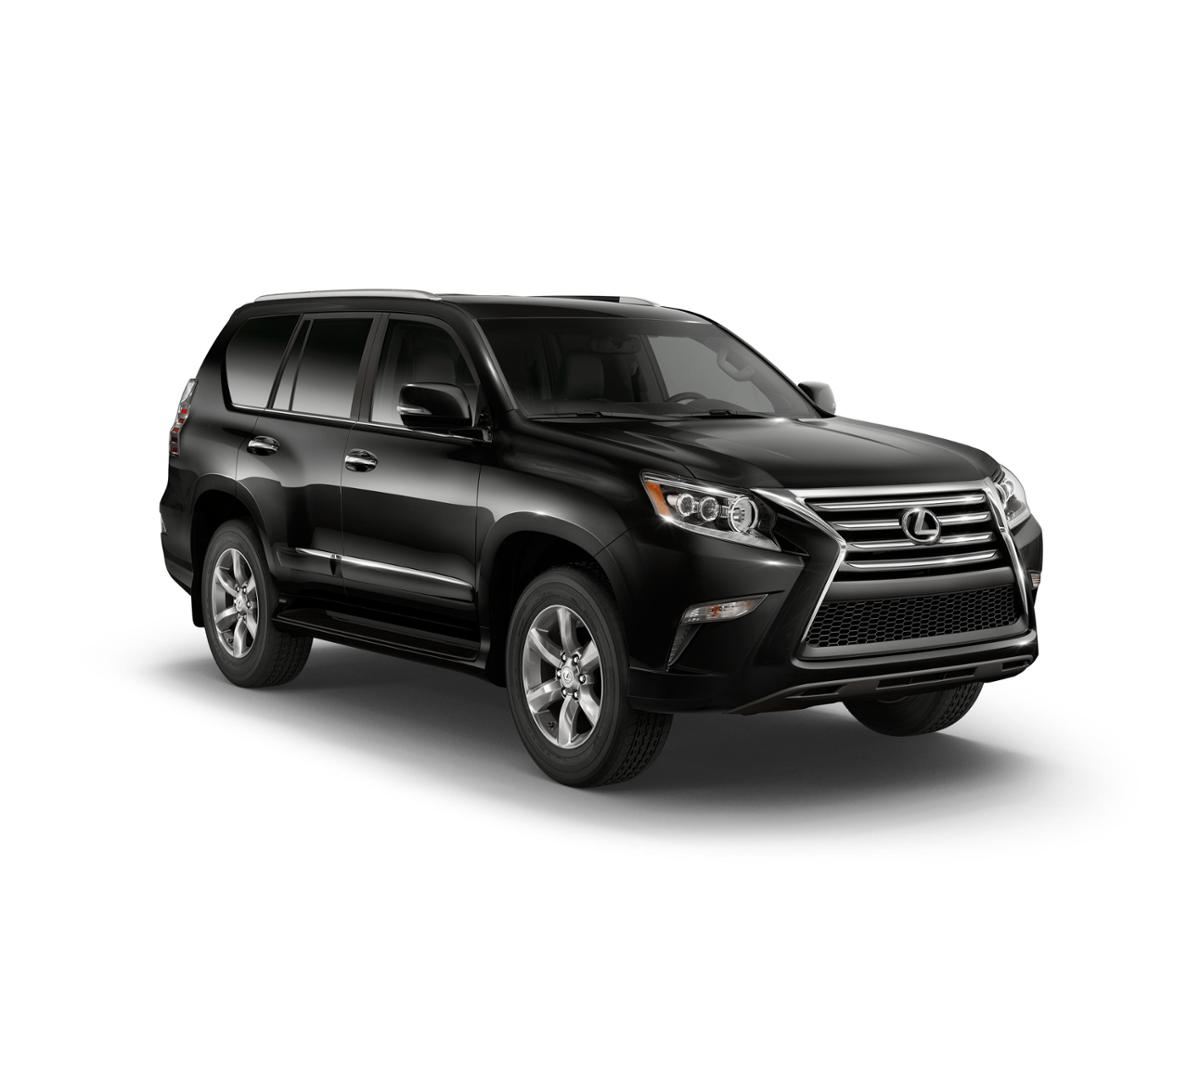 2017 Lexus GX 460 Vehicle Photo in Santa Monica, CA 90404